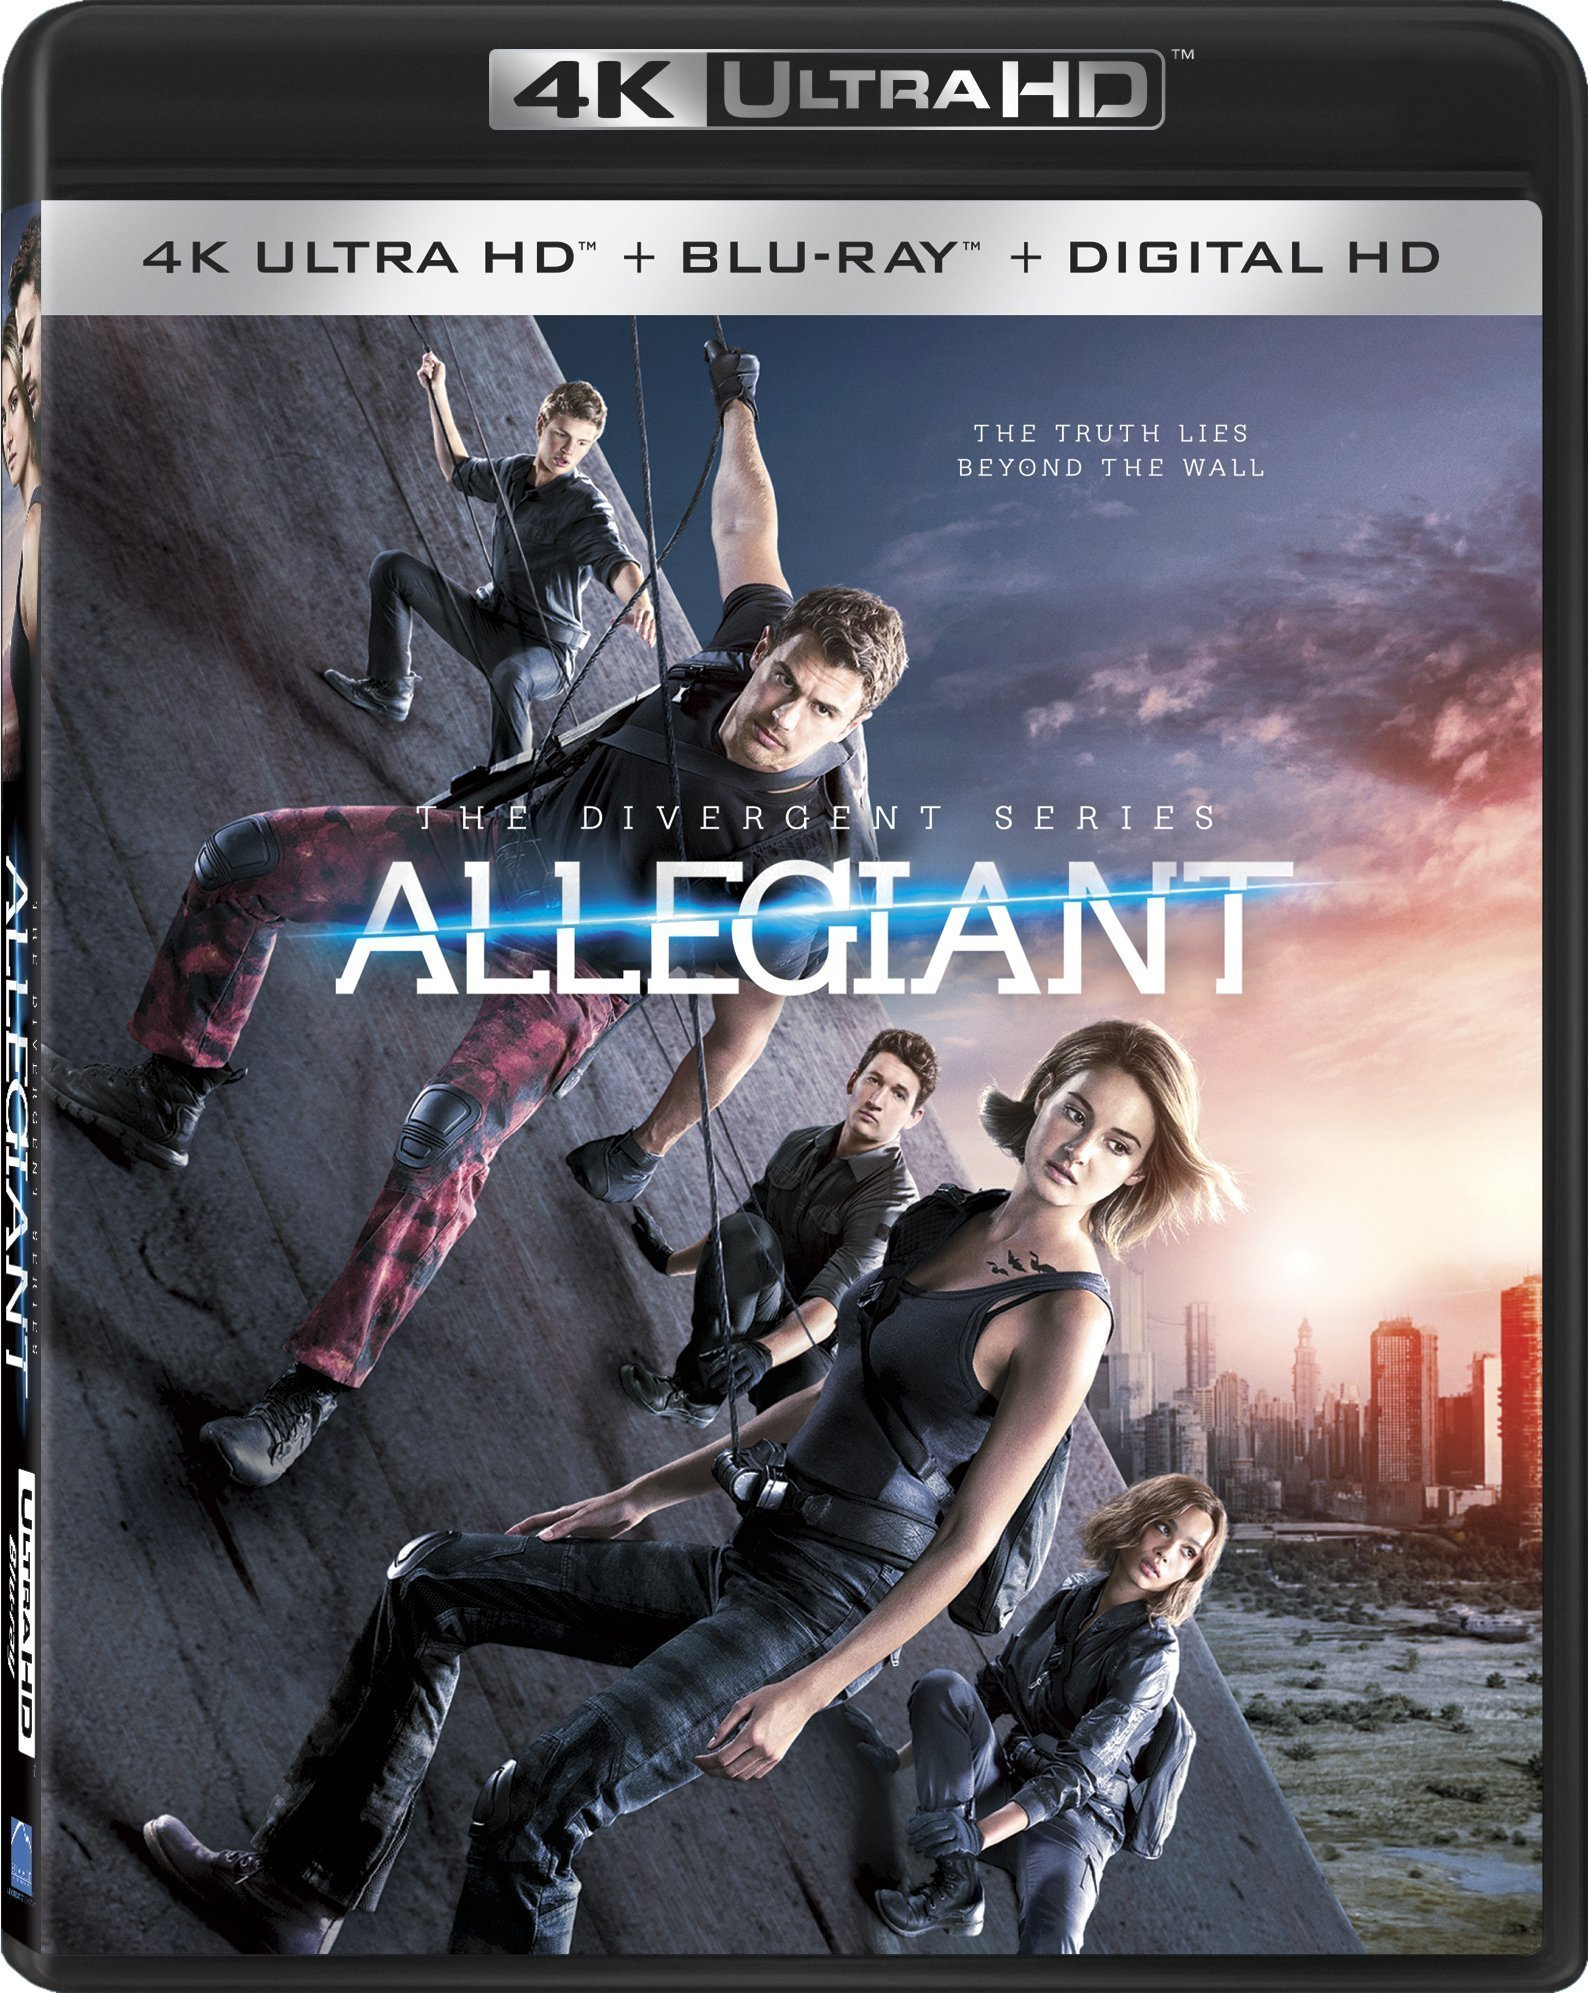 Allegiant (The Divergent Series)(2016) 4K Ultra HD Blu-ray